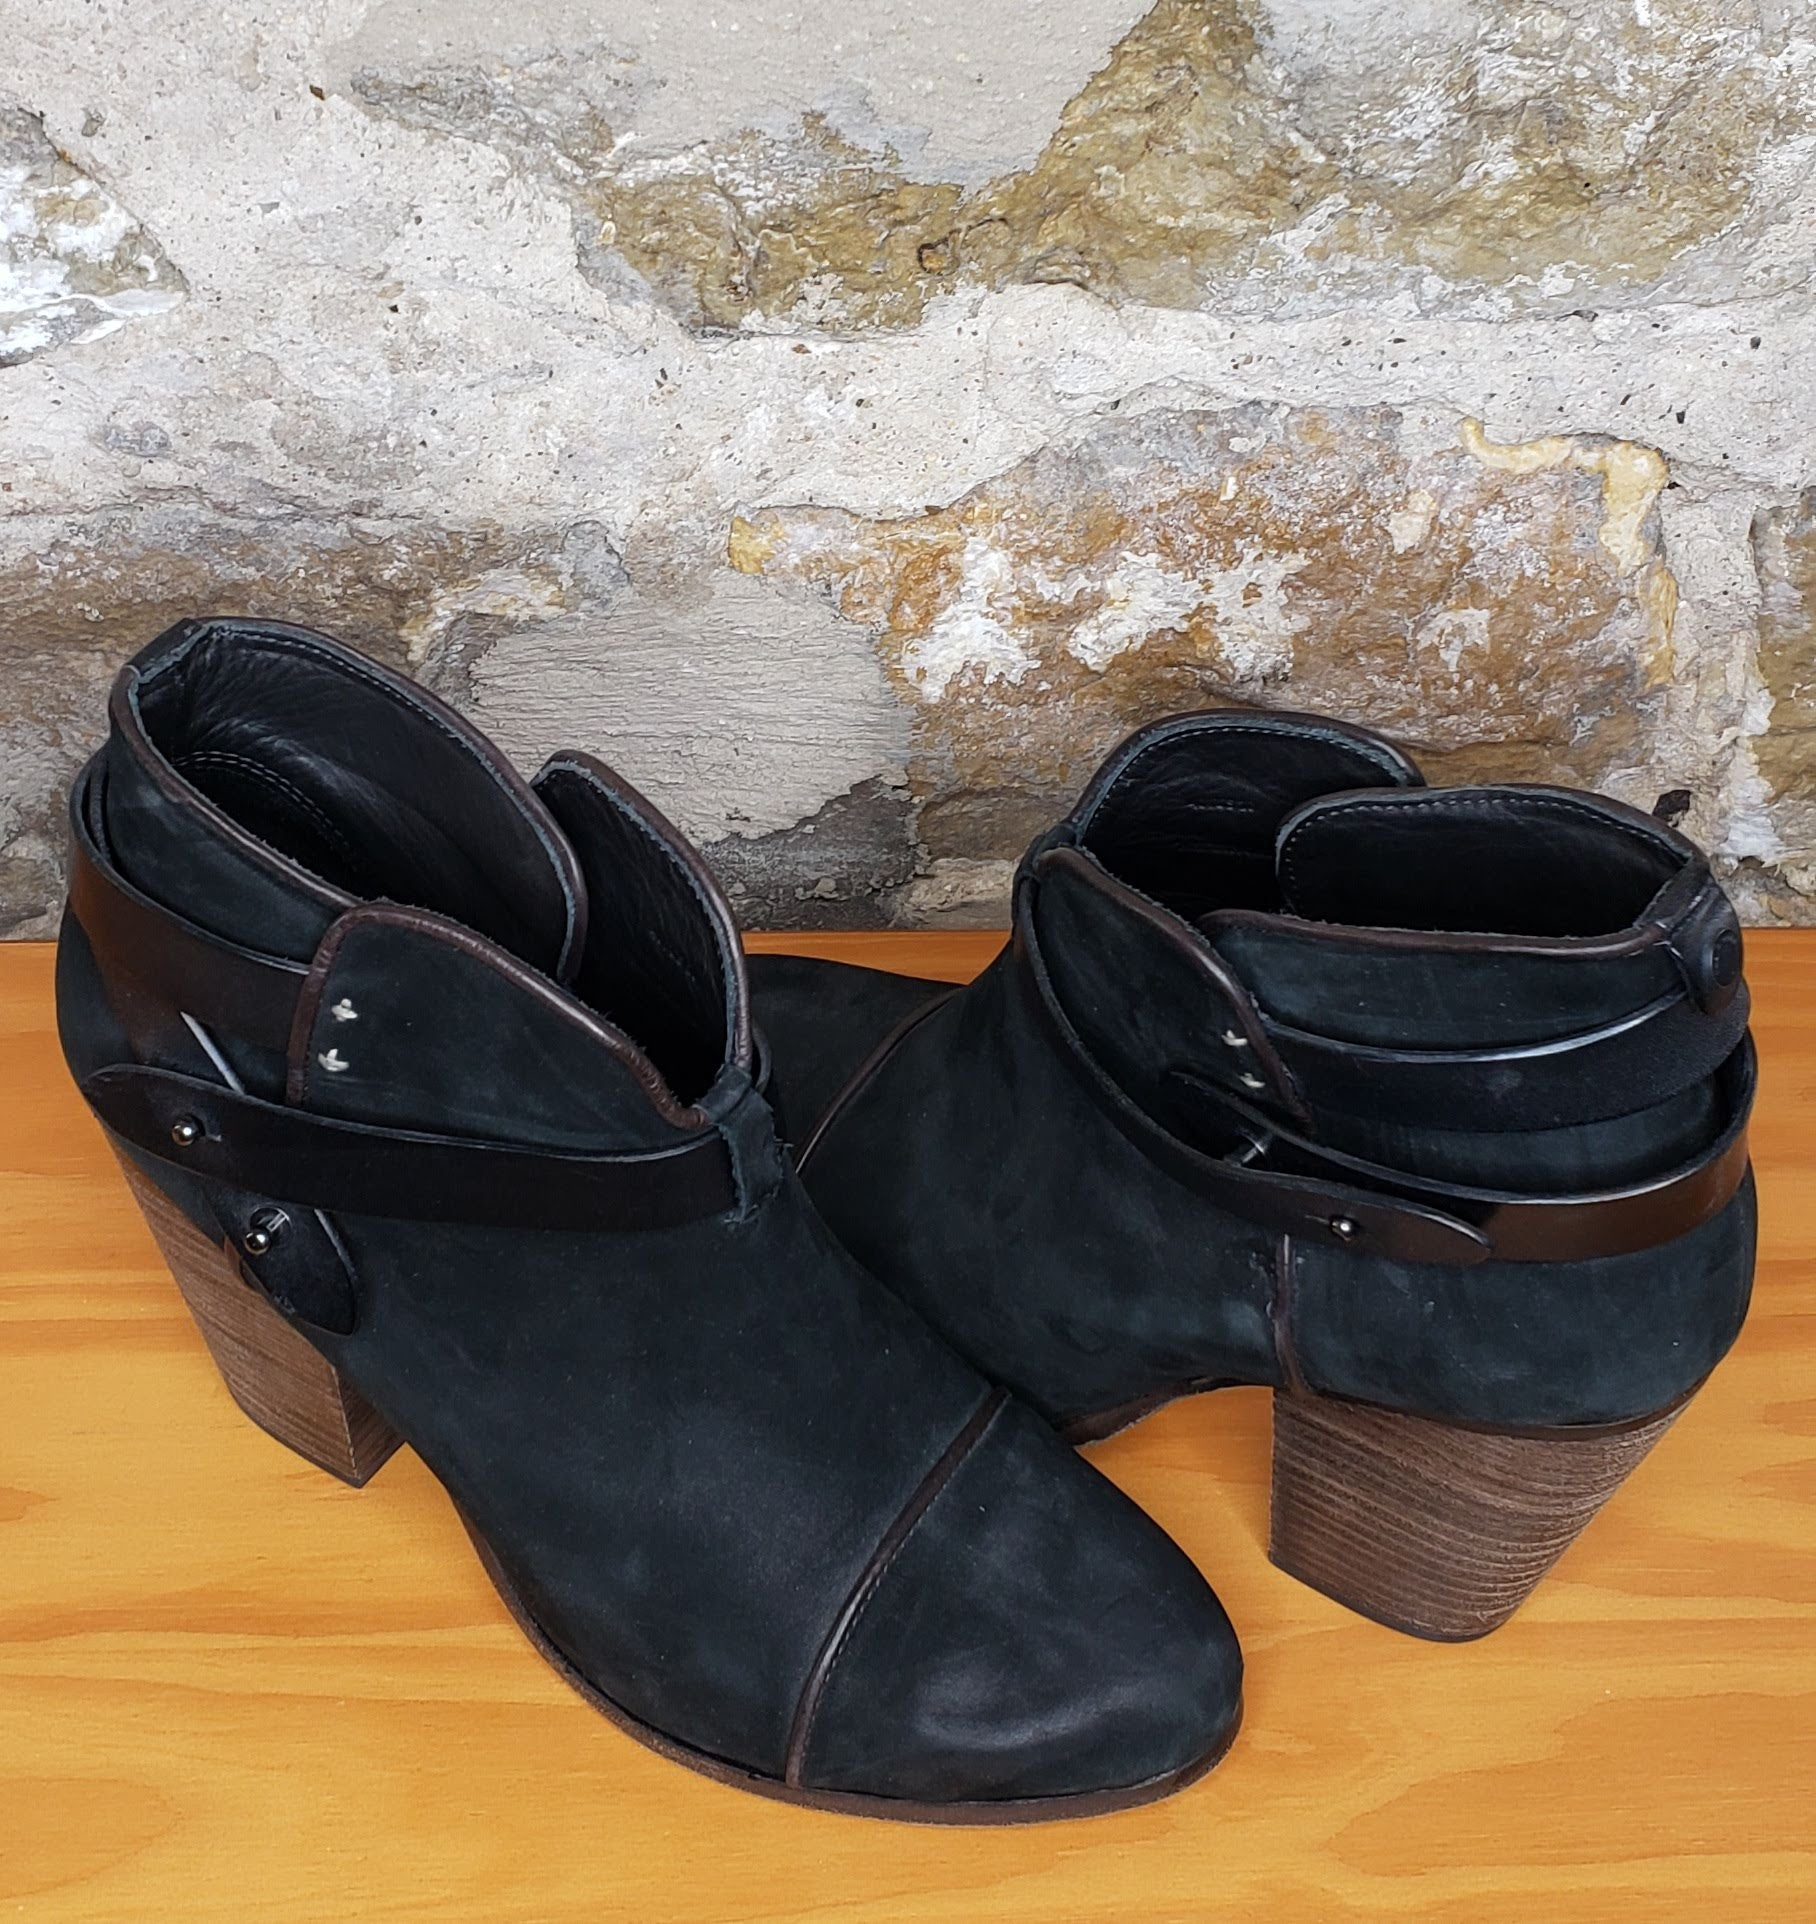 Rag & Bone Black Leather Bootie Sz 40